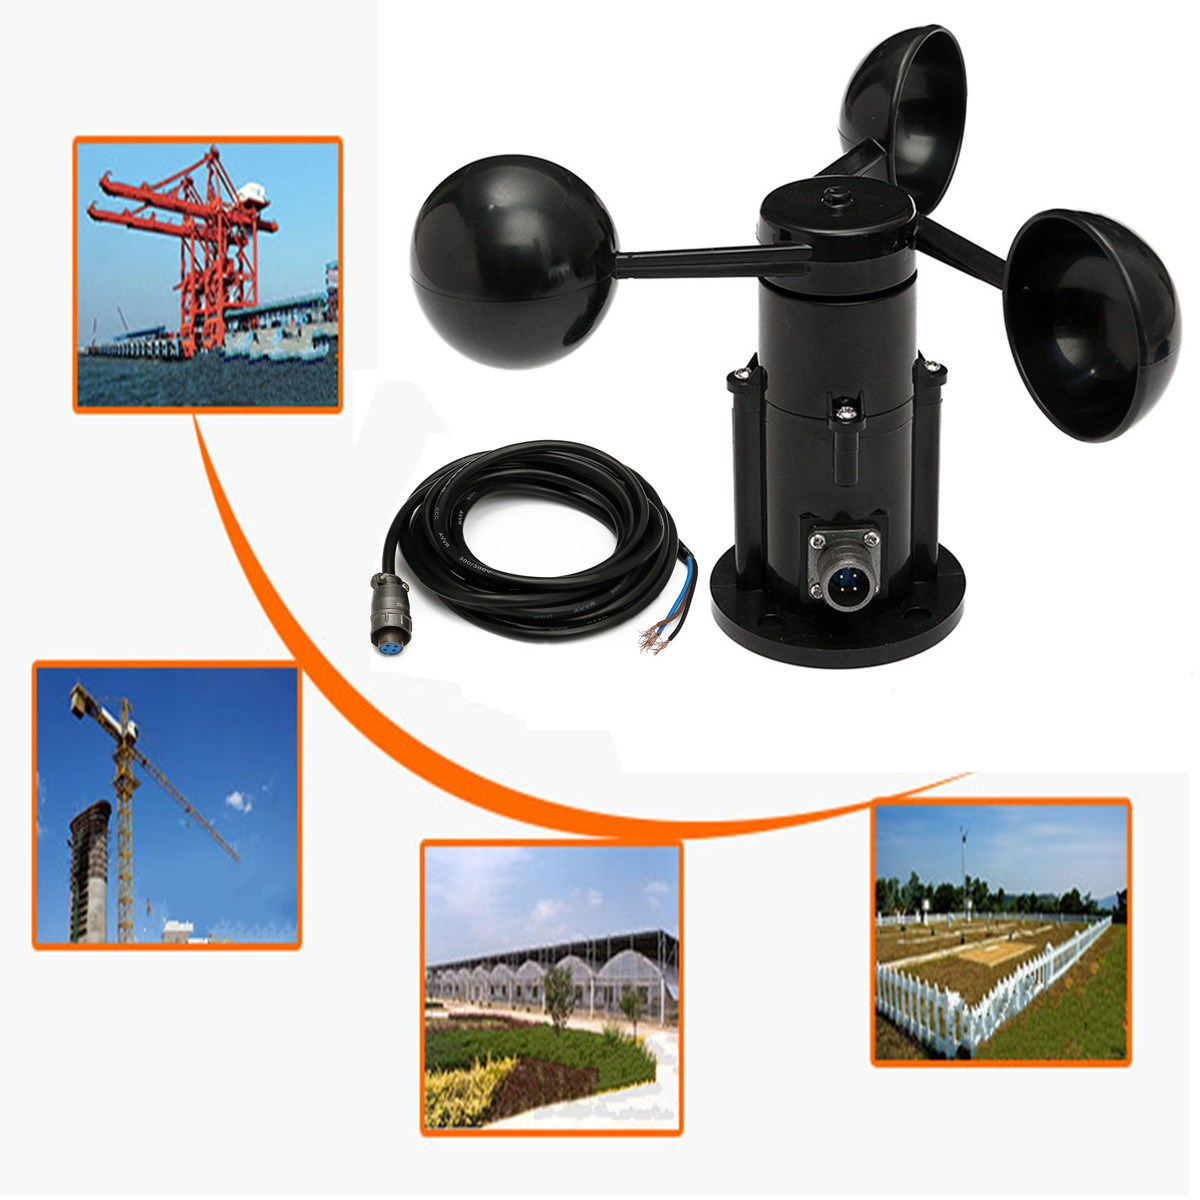 New  0-5V Voltage Wind Speed Sensor 360 degree Anemometer Three Cups Aluminium Alloyed Digital Pulse Signal Output current voltage output 4 20ma 0 5v wind direction sensor transducer al alloyed